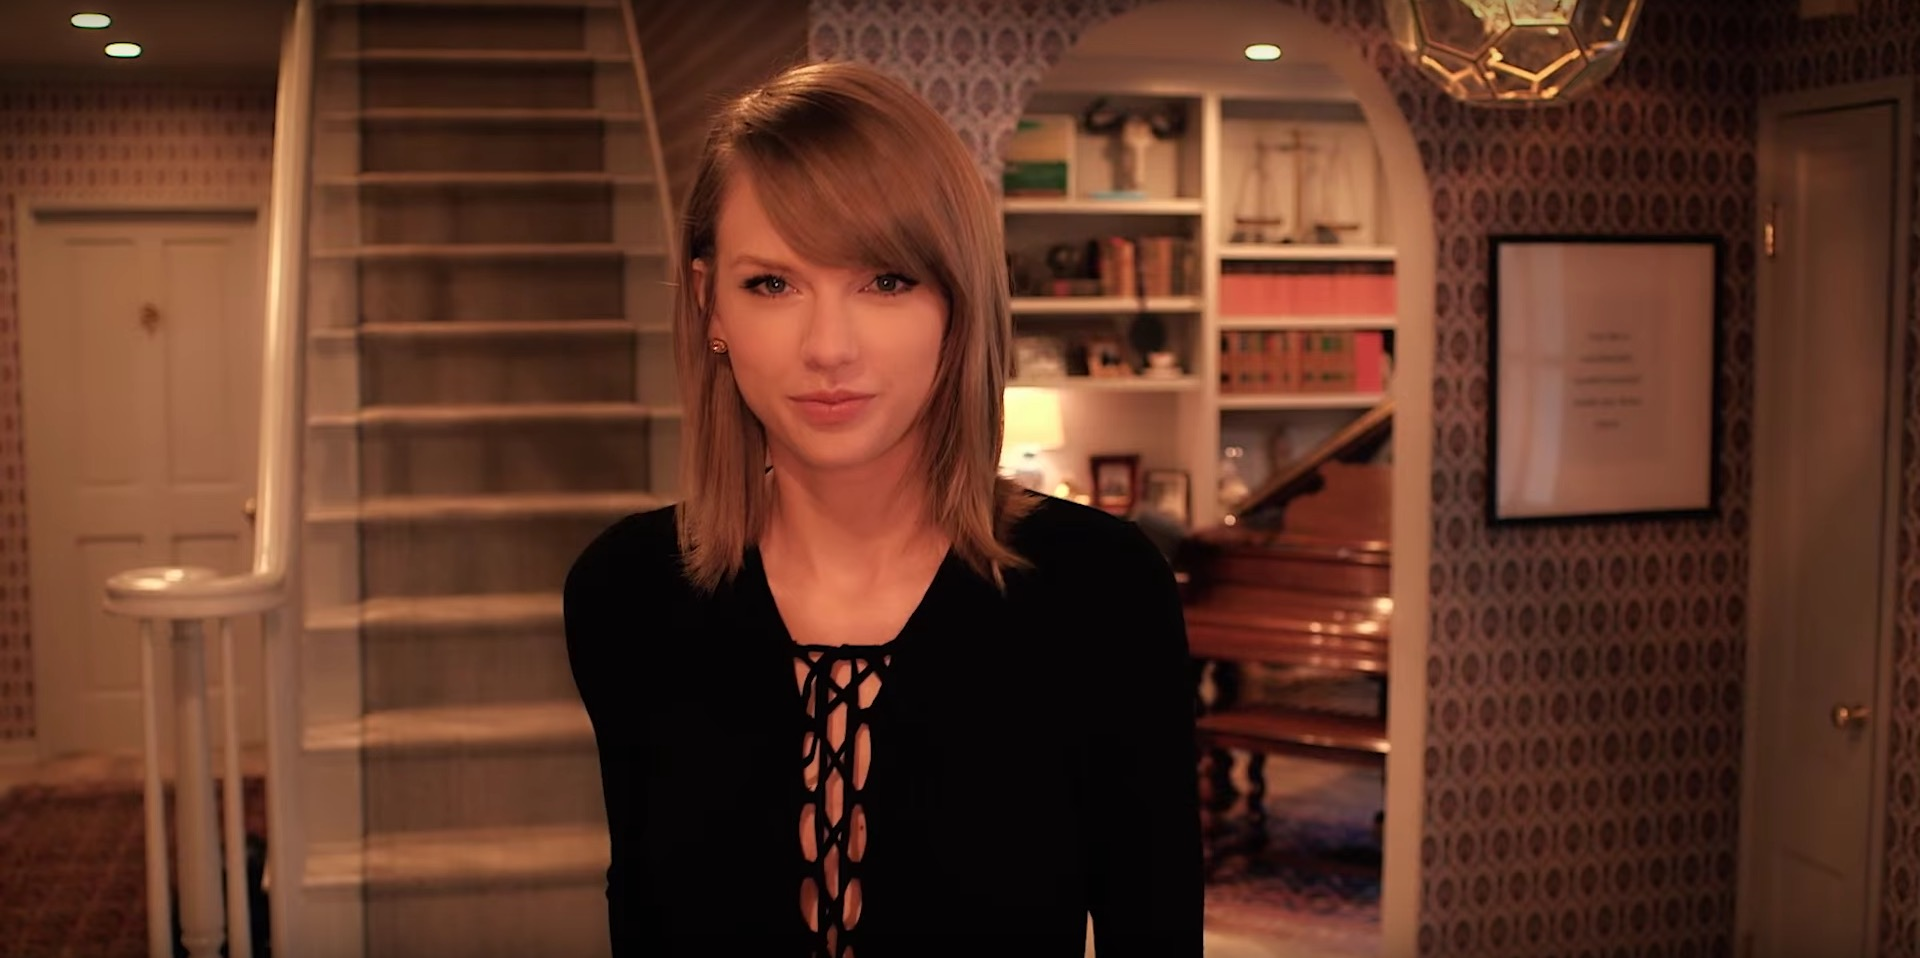 Taylor Swift Answers 73 Questions, and it Gets Kind of ... Questions And Answers Funny